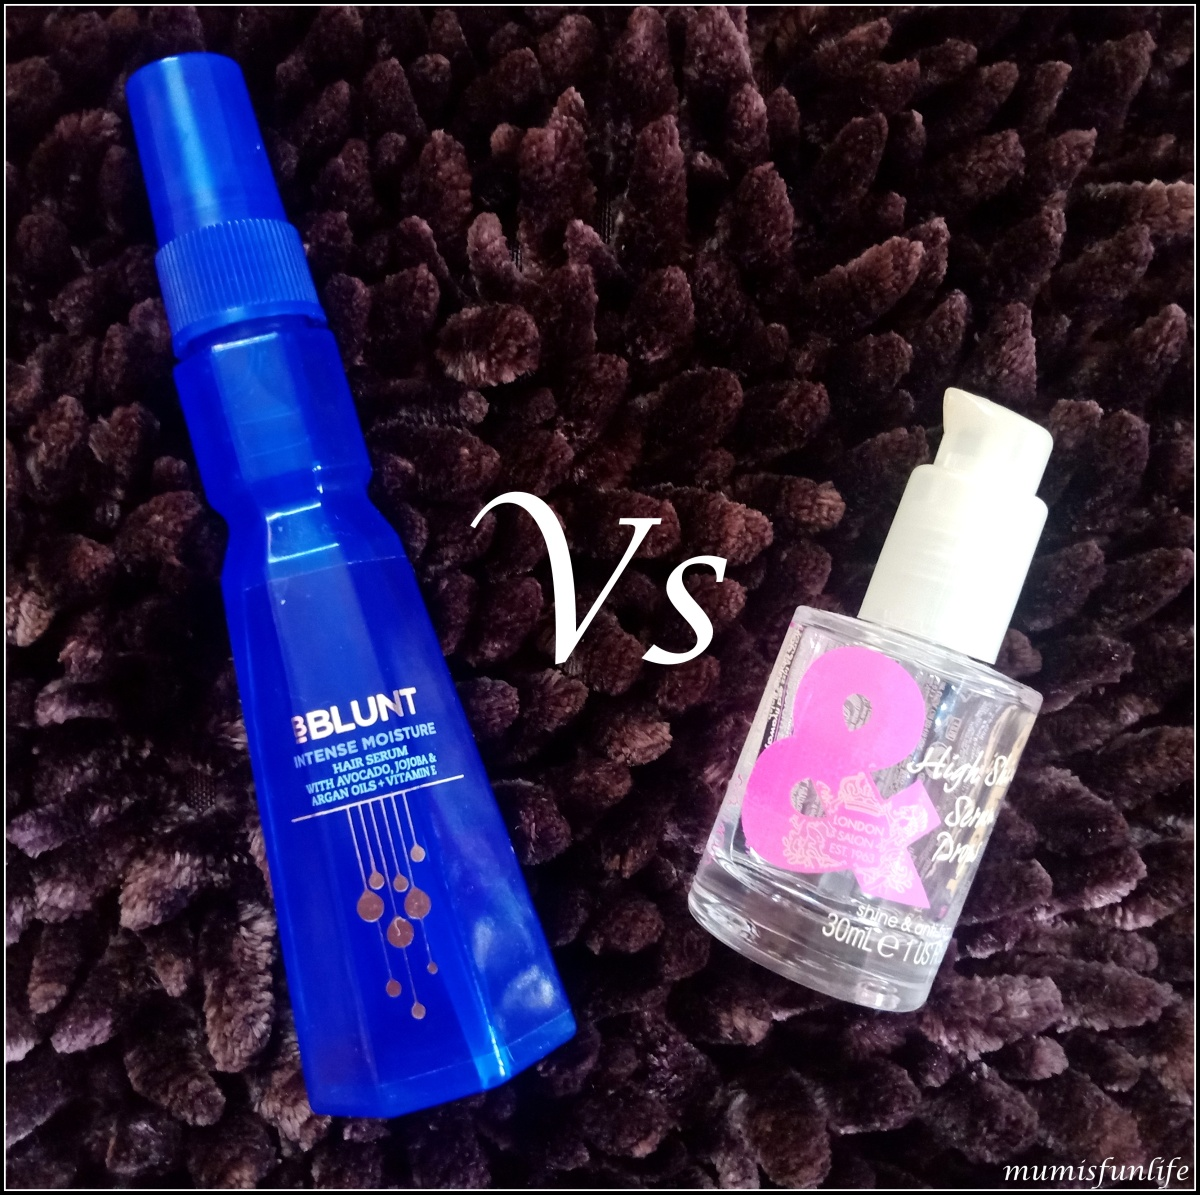 Comparison - Toni&Guy High Shine serum Drops & BBLUNT Intense Moisture Hair Serum